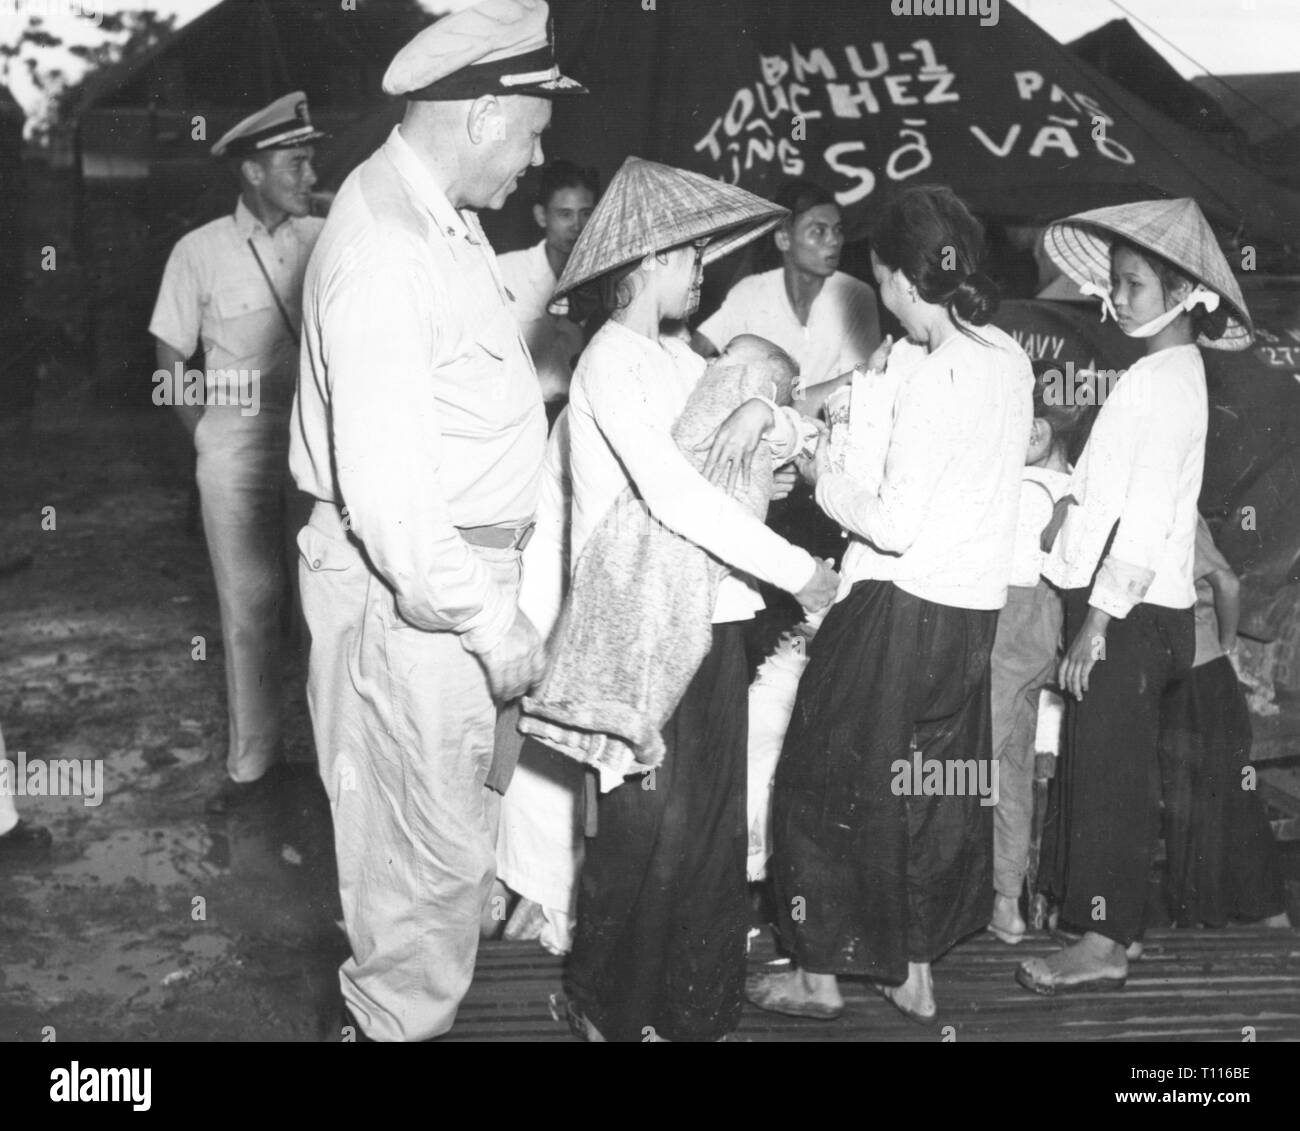 Indochina War 1946 - 1954, mass evacuation of Vietnamese civilians from Haiphong to Saigon, September 1957, captain Julius Amberson, chief of the preventive medicine division at the Naval Hospital in Bethesda, Maryland, is inspecting a refugee camp, navy physician, physician, physicians, medical care, US navy, medical service, first aid, United States Navy Medical Corps, USA, United States of America, American, women, evacuation, evacuations, flight, misery, hardship, people, war, wars, Indochina, Viet Nam, Vietnam, 20th century, 1950s, civilian,, Additional-Rights-Clearance-Info-Not-Available - Stock Image